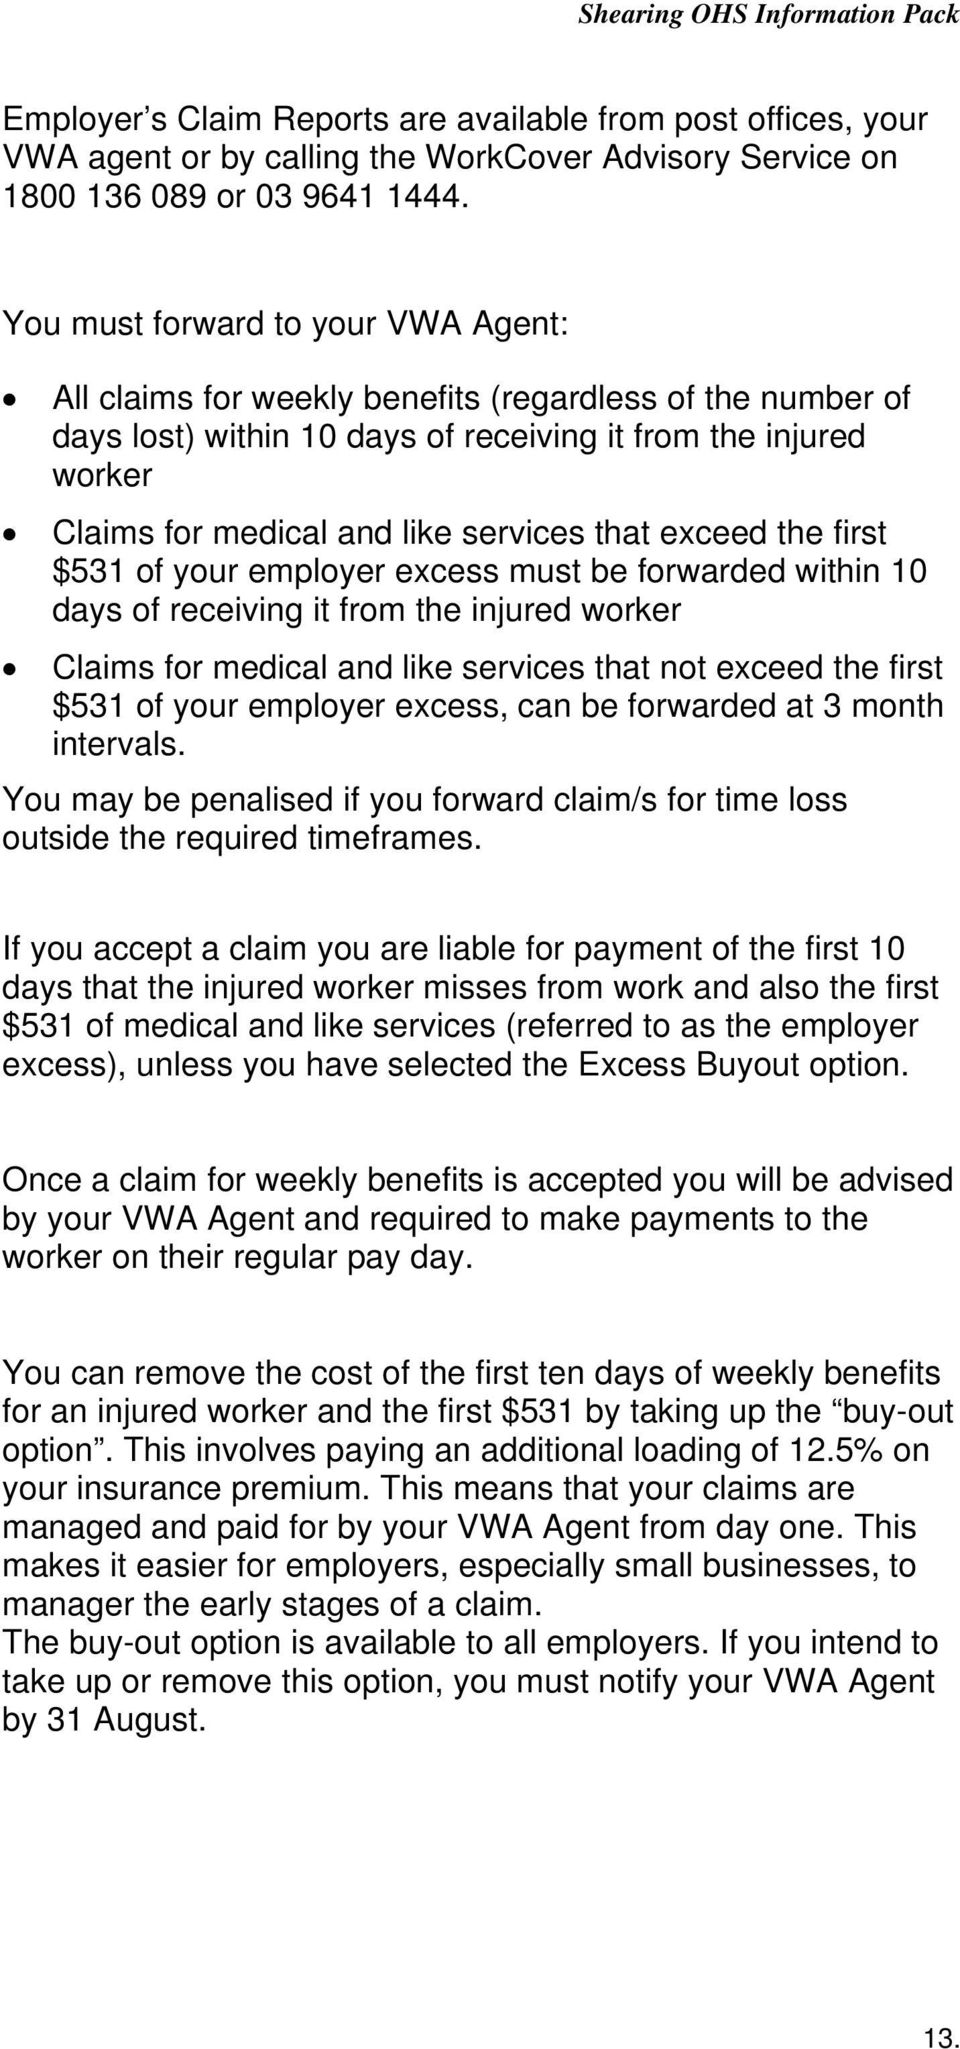 that exceed the first $531 of your employer excess must be forwarded within 10 days of receiving it from the injured worker Claims for medical and like services that not exceed the first $531 of your